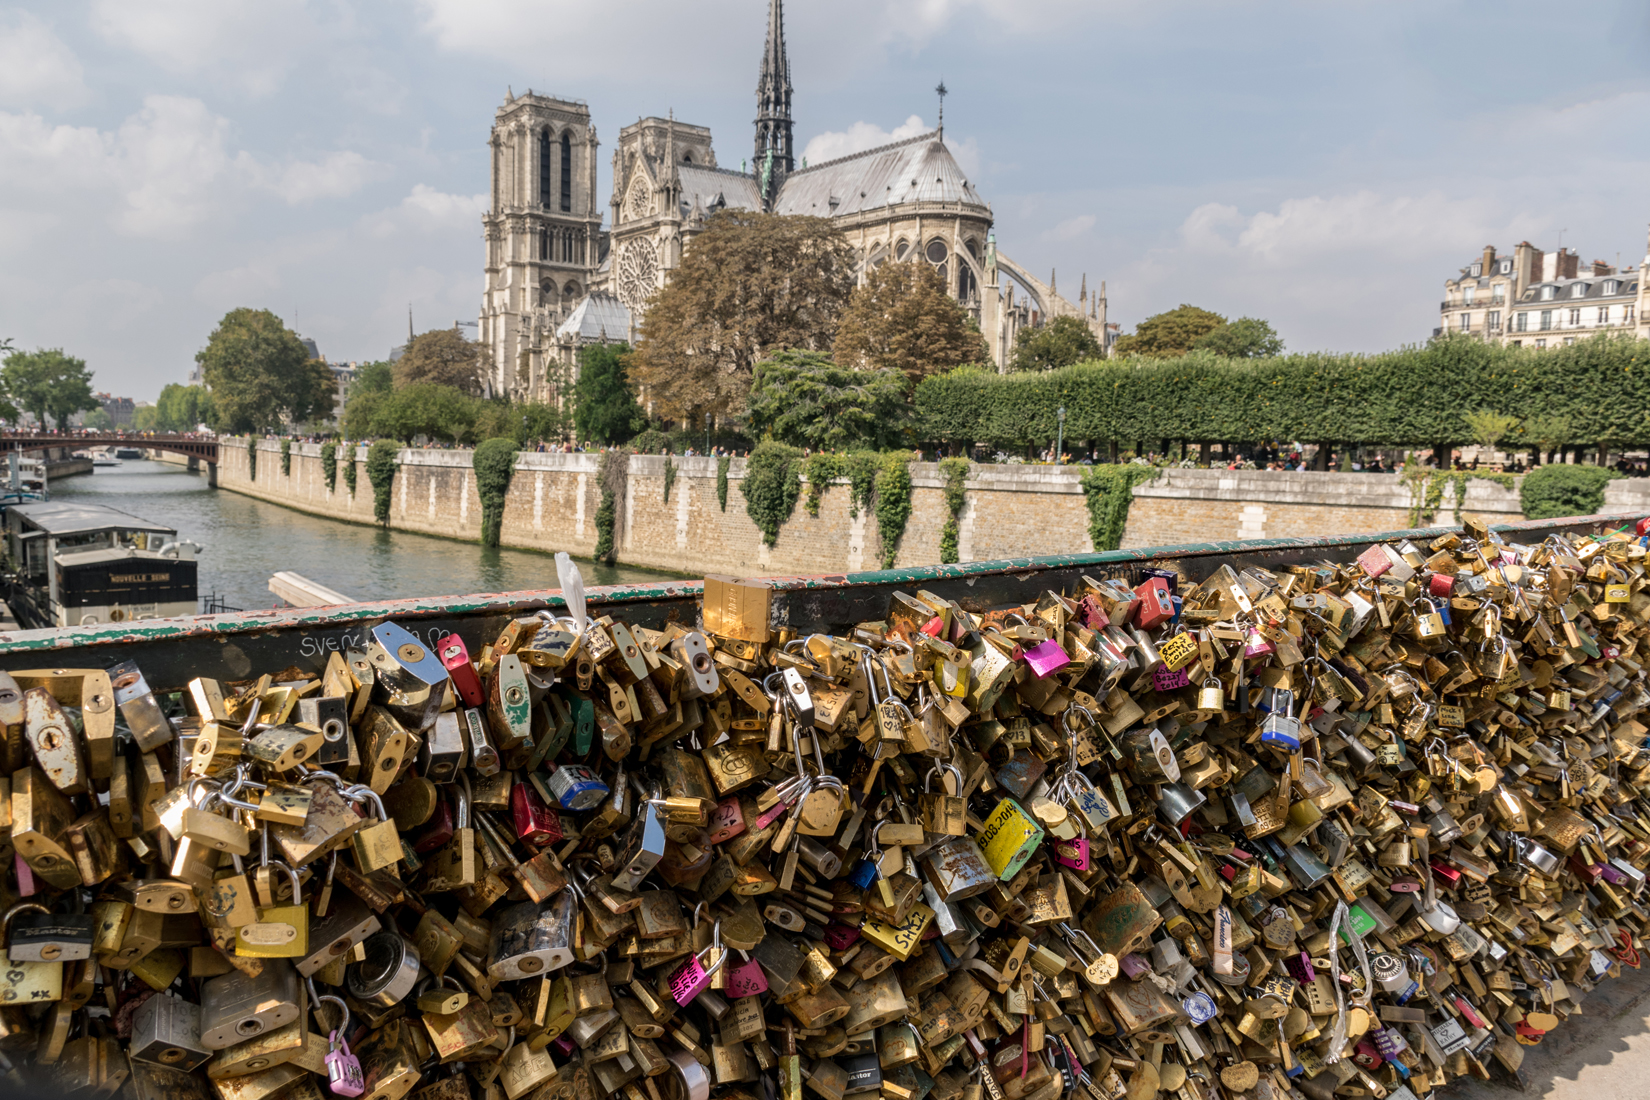 The Pont de l'Archevêché bridge over the Seine covered in thousands of love locks